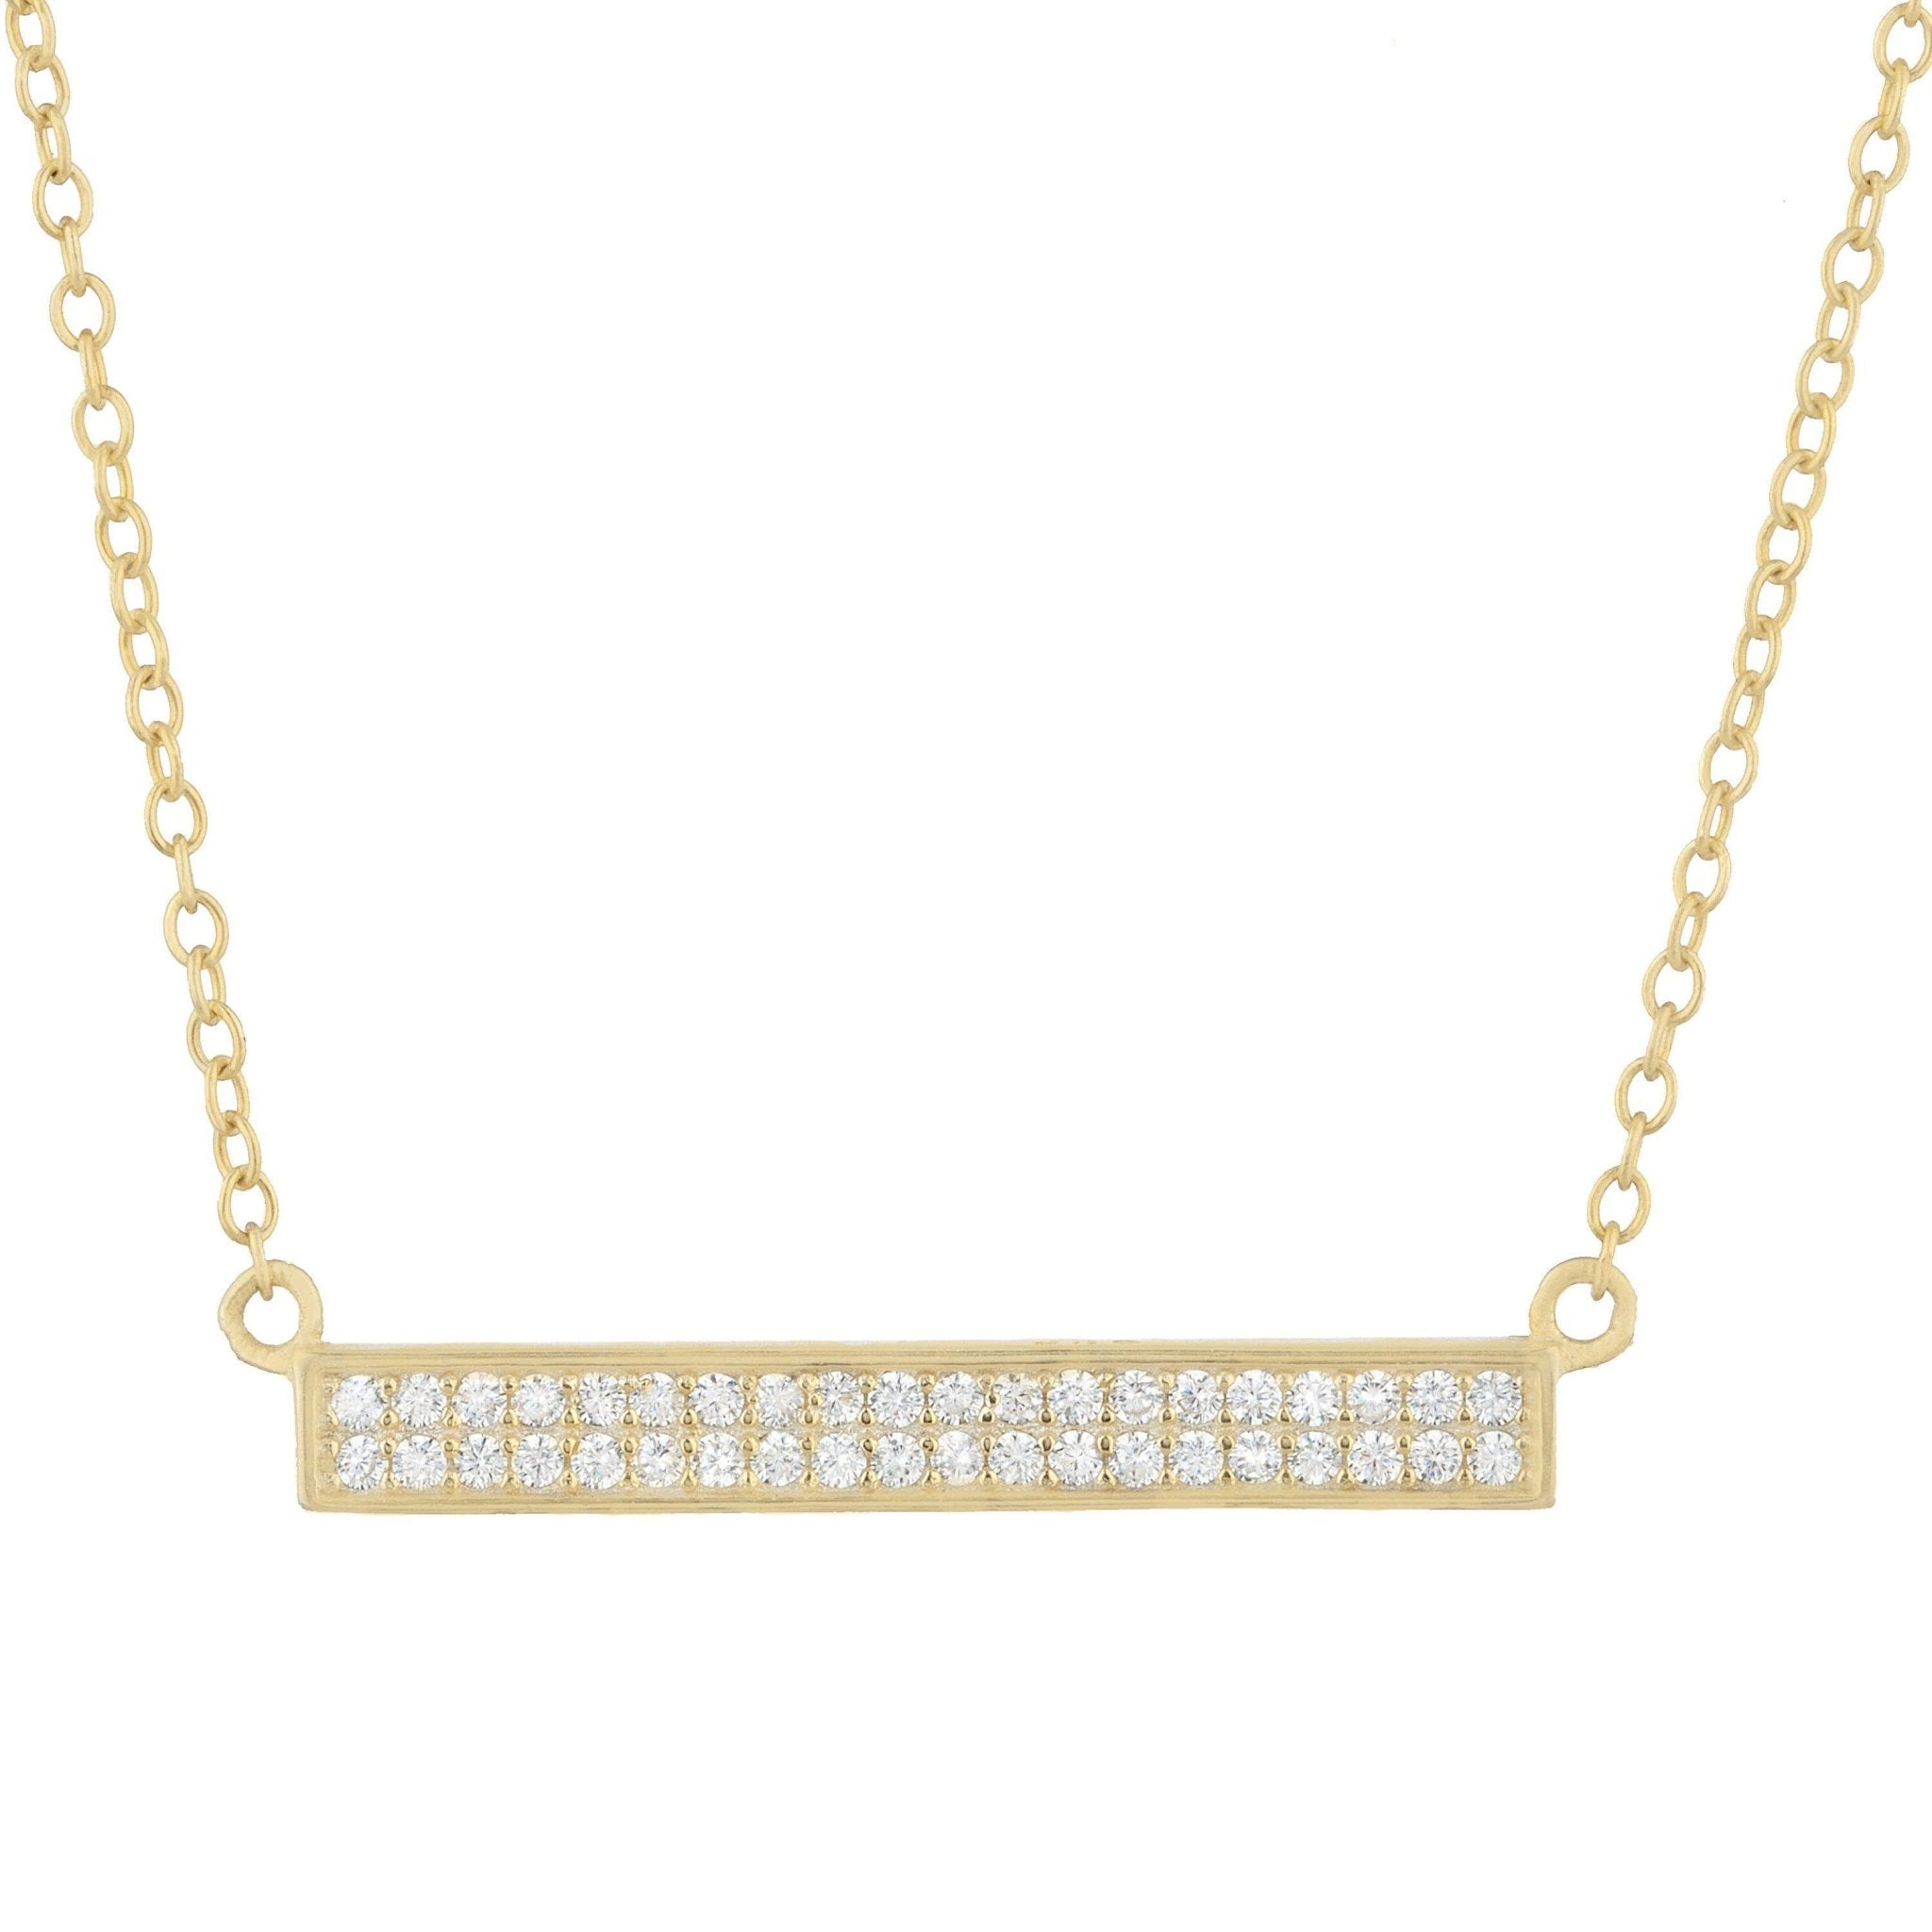 Sienna Pave Bar Necklace - Taylor Adorn